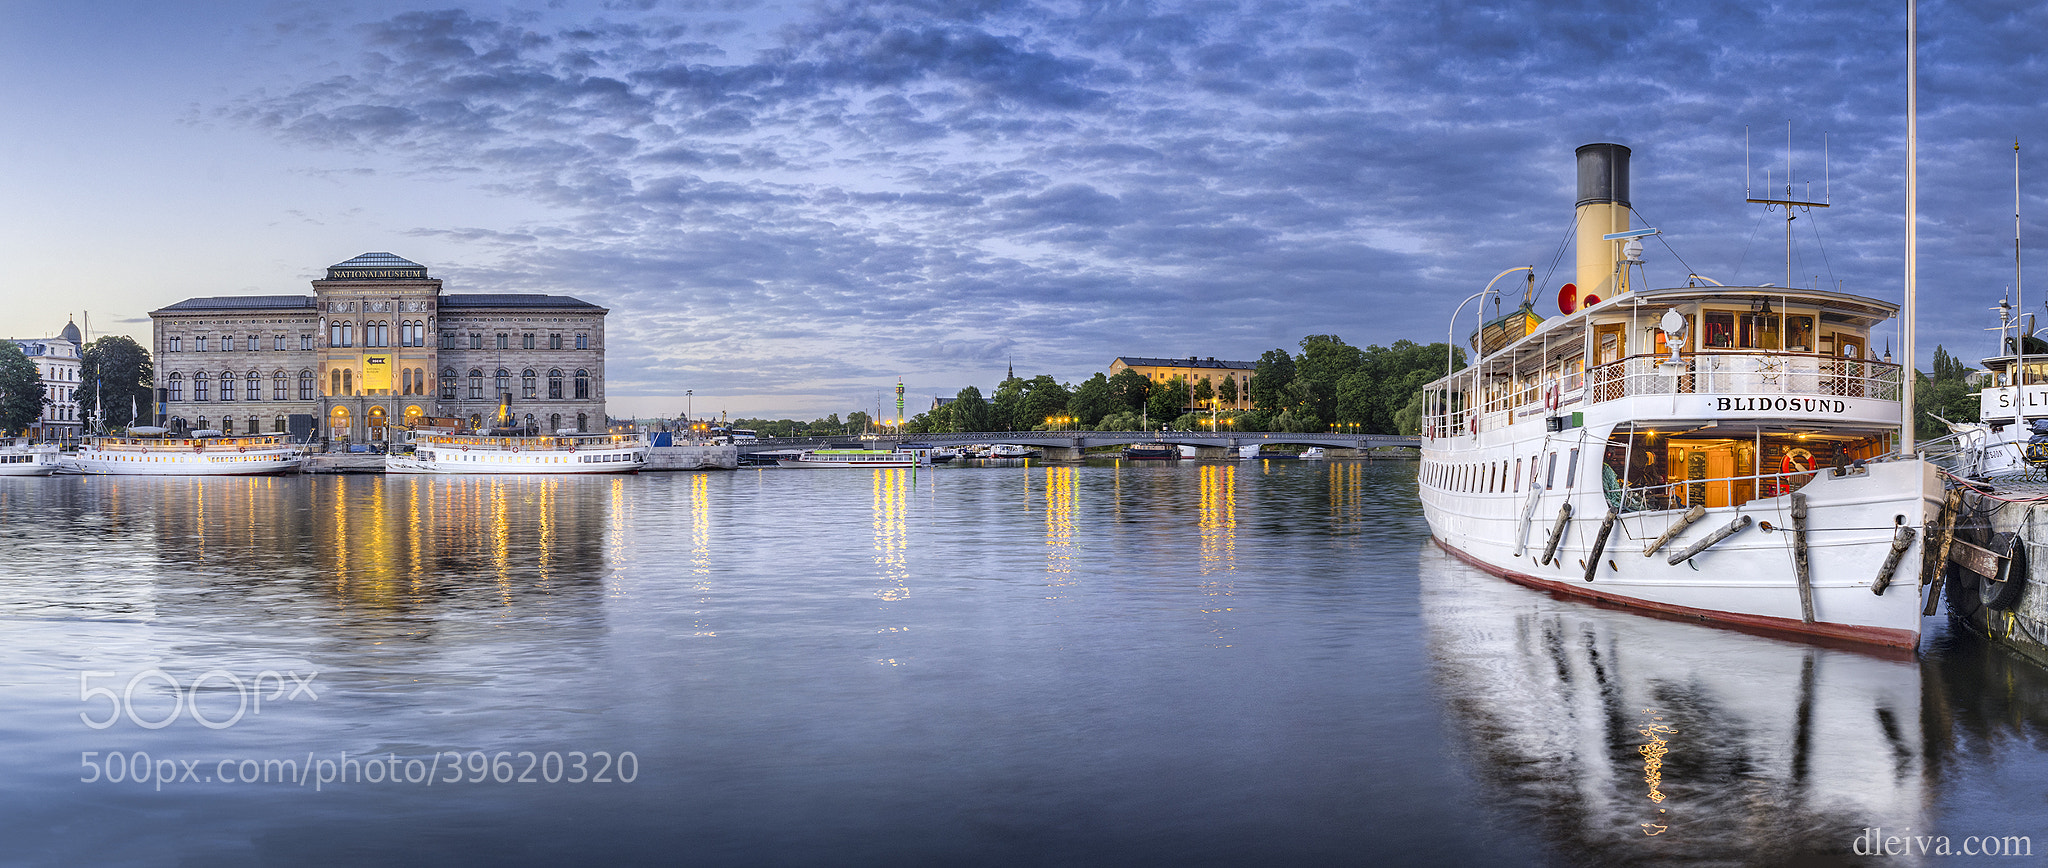 Photograph National Museum (Stockholm, Sweden) by Domingo Leiva on 500px